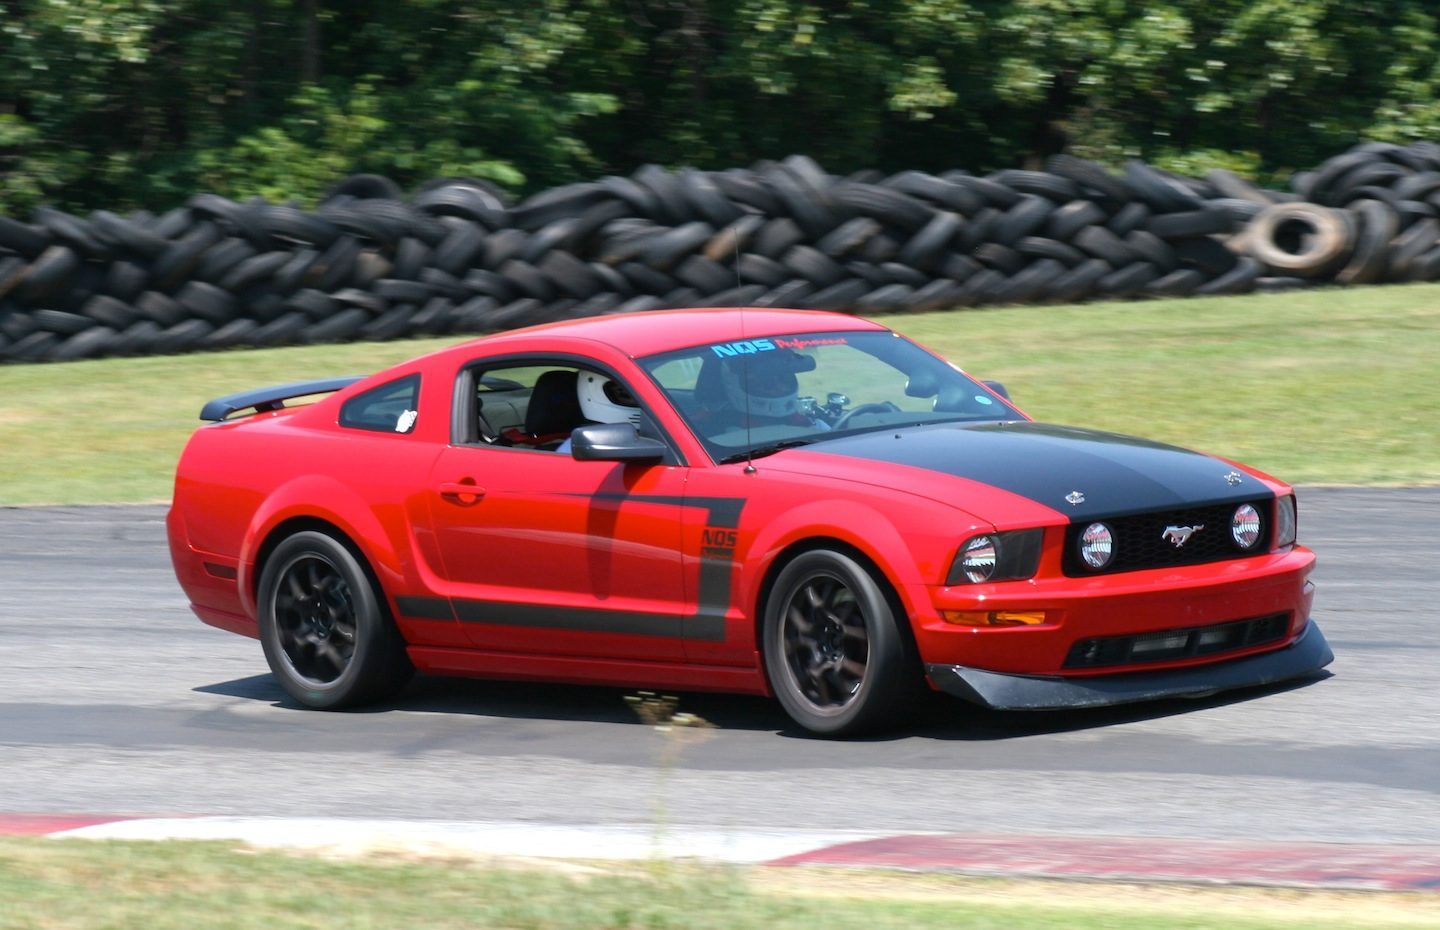 NQS%20Mustang%20at%20Hallett.jpg